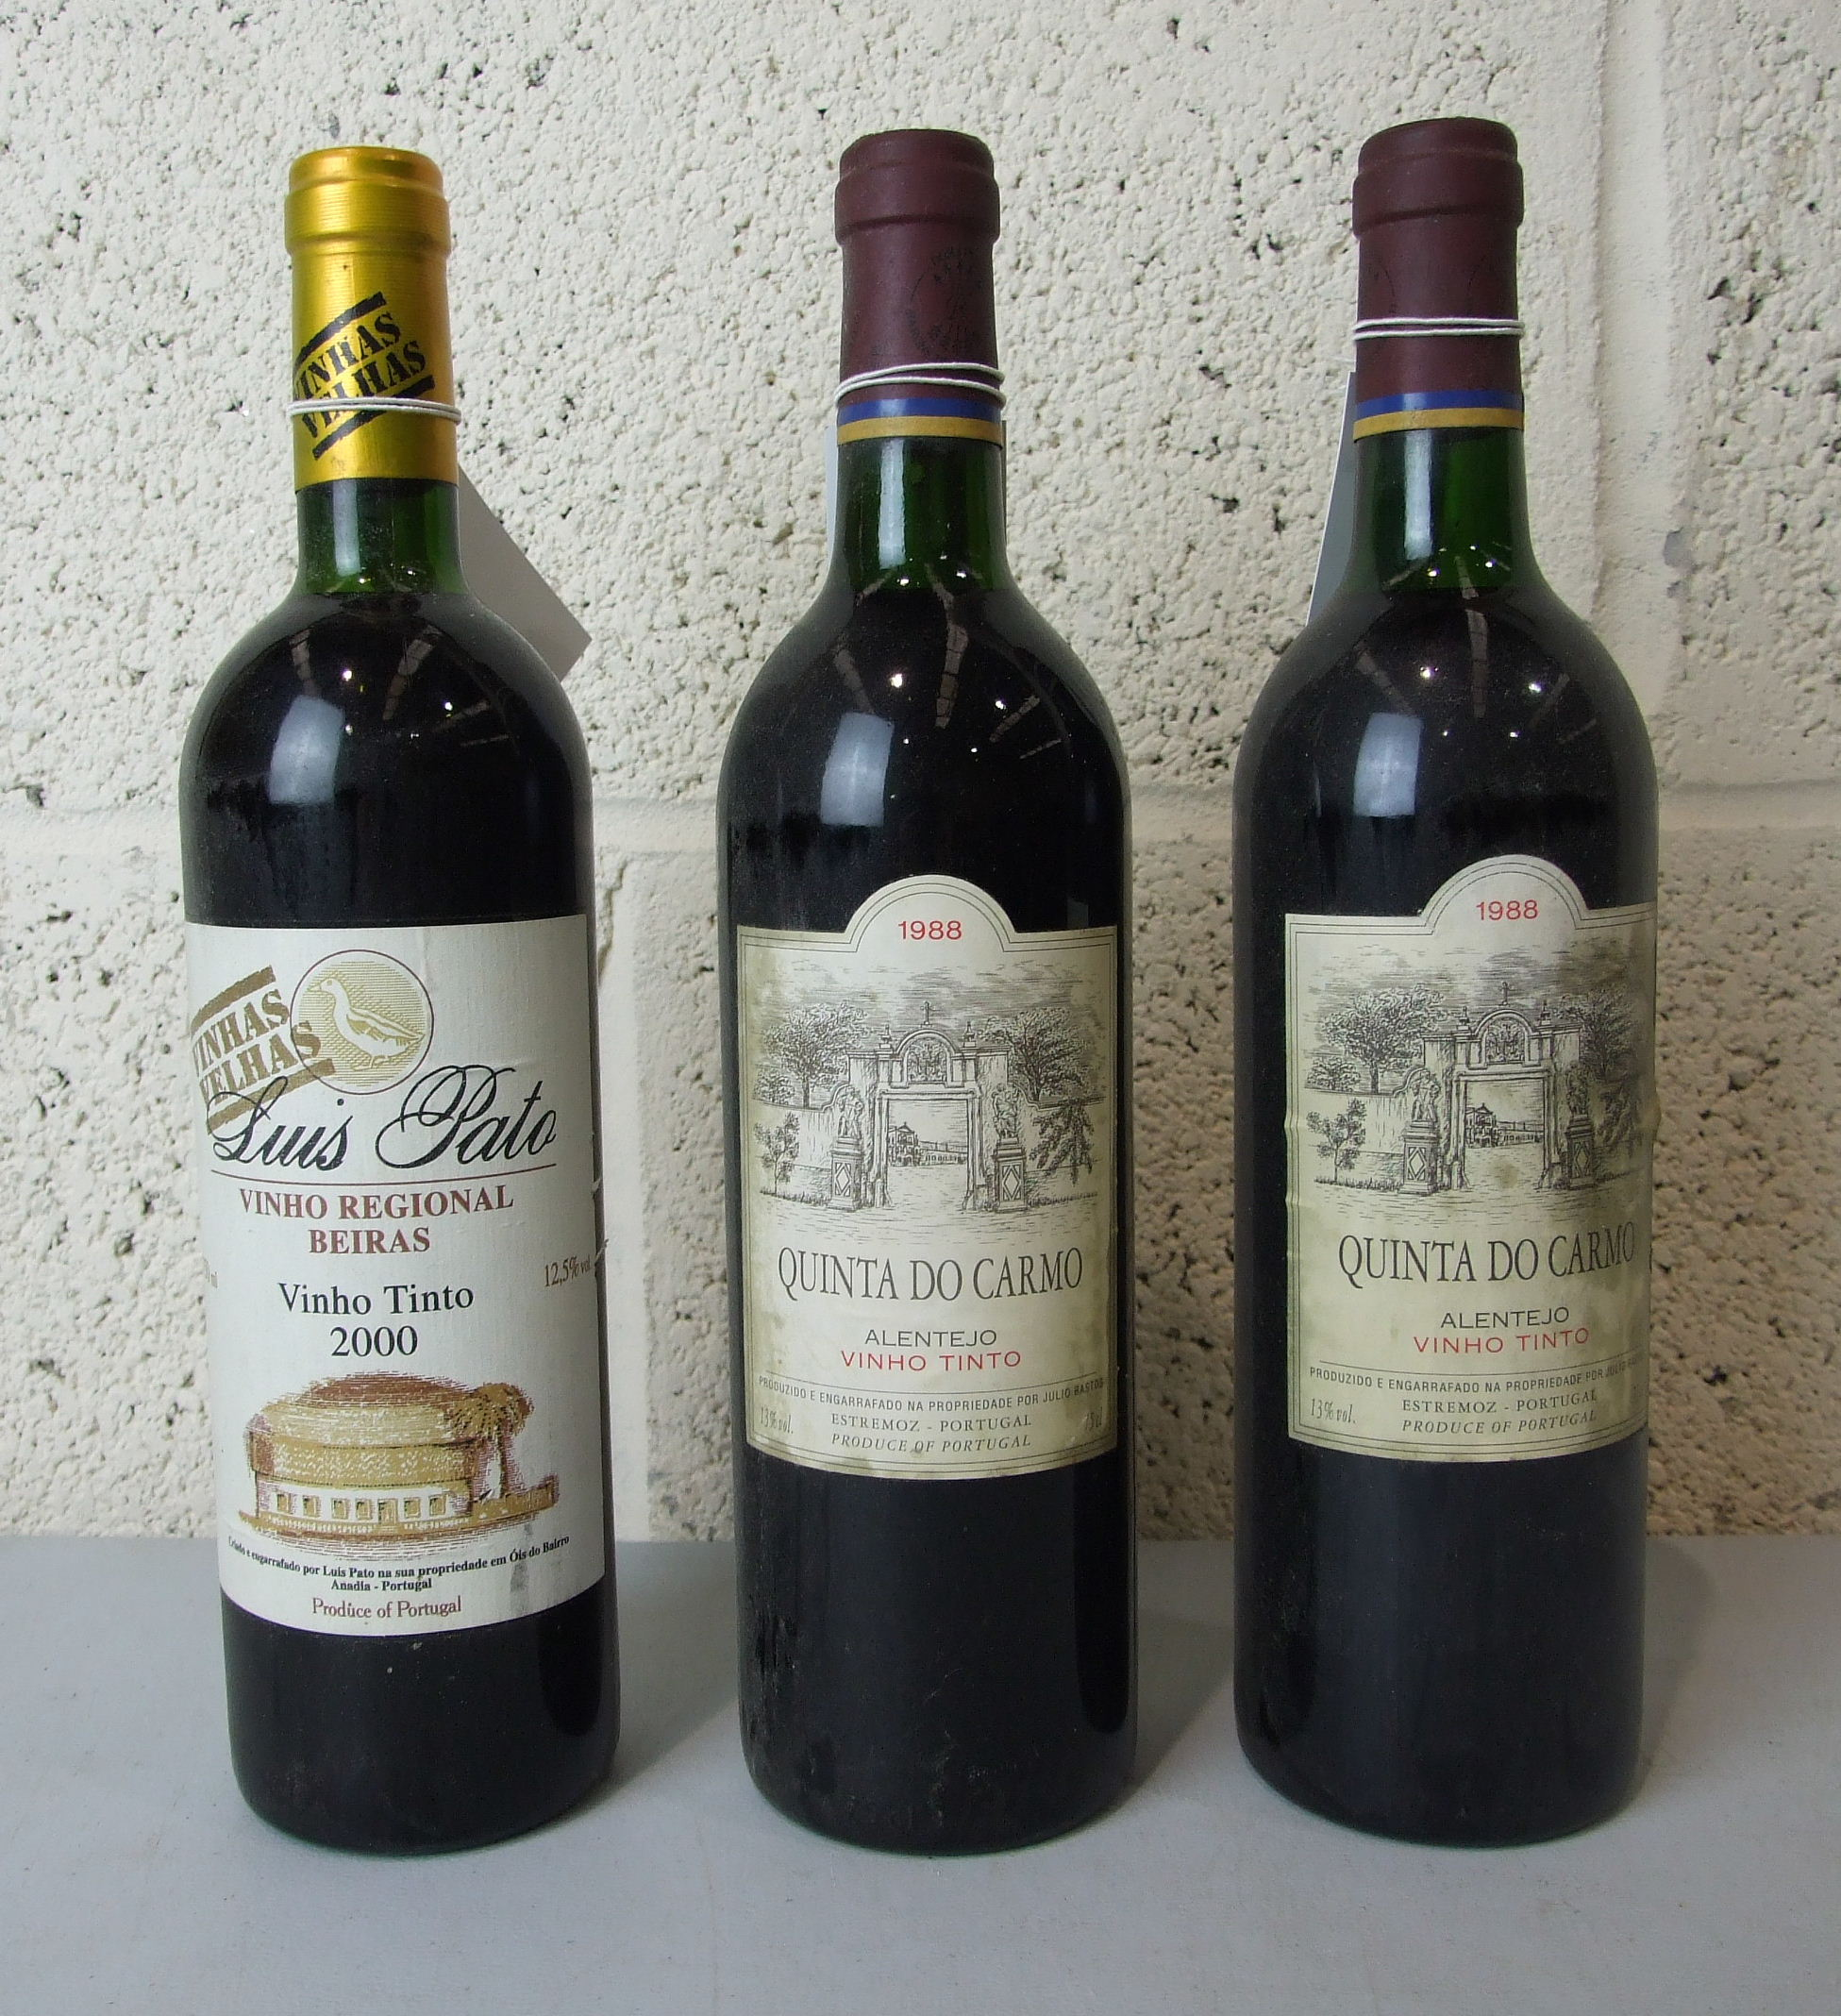 Lot 34 - Portugal, Quinta Do Carmo 1988, two bottles and Luis Pato 2000, one bottle, (3).